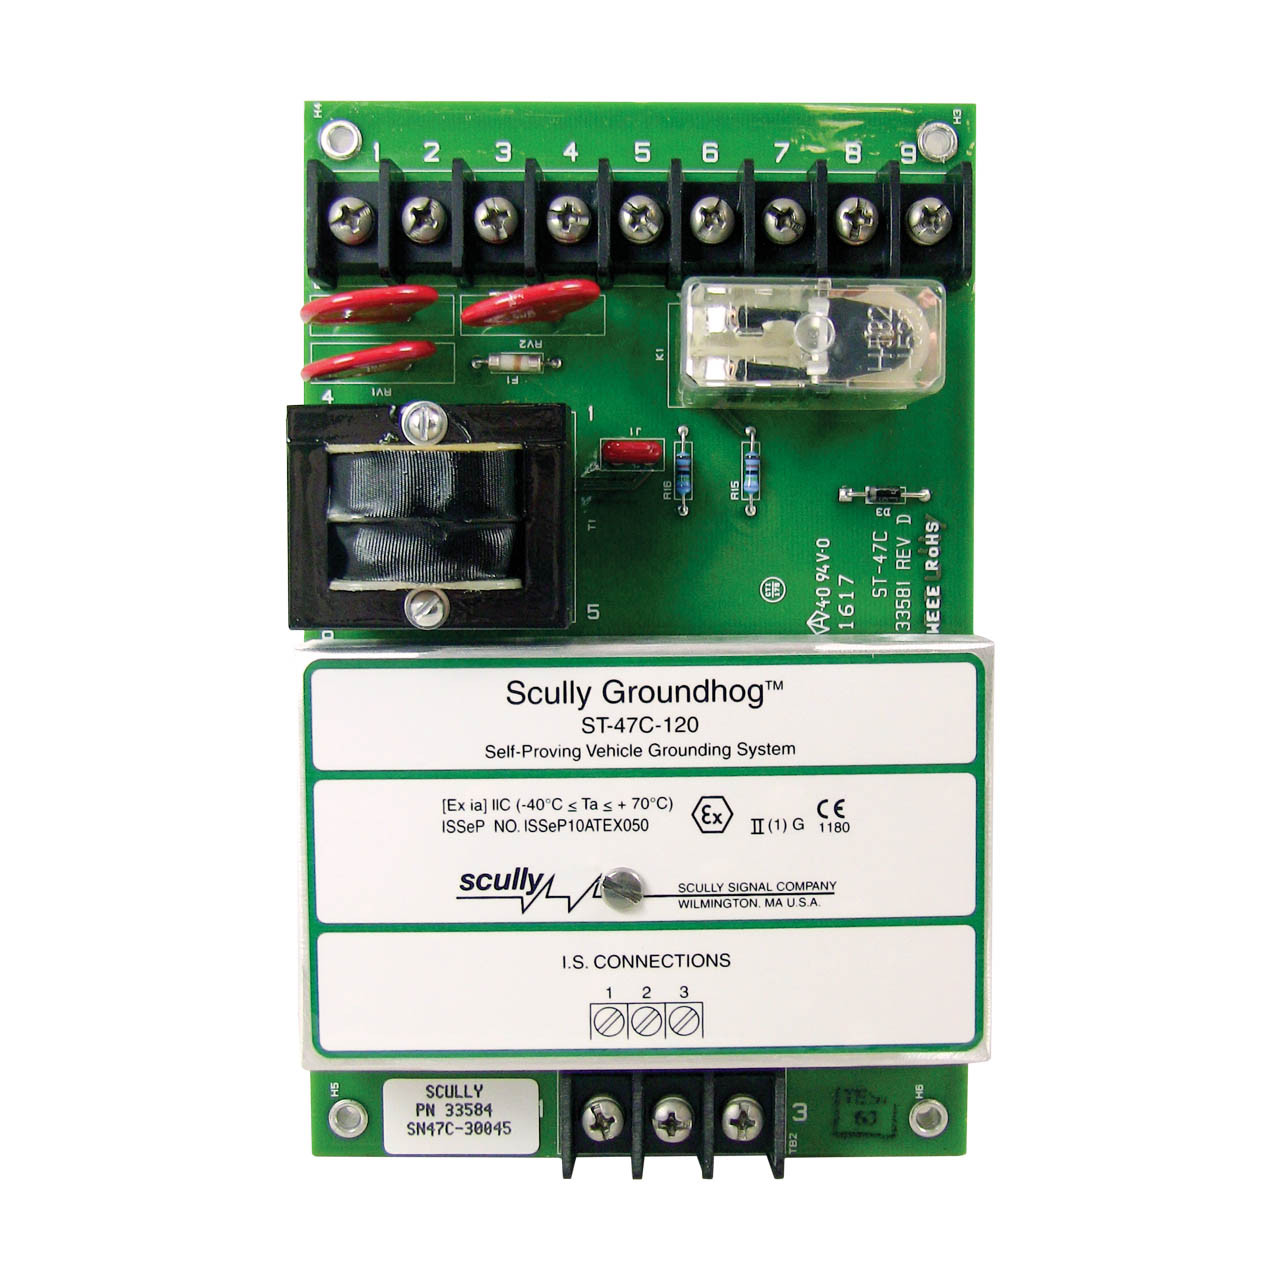 scully st 47 replacement module for groundhog static ground proving control unit 115 vac models Power Mirror Wiring Diagram